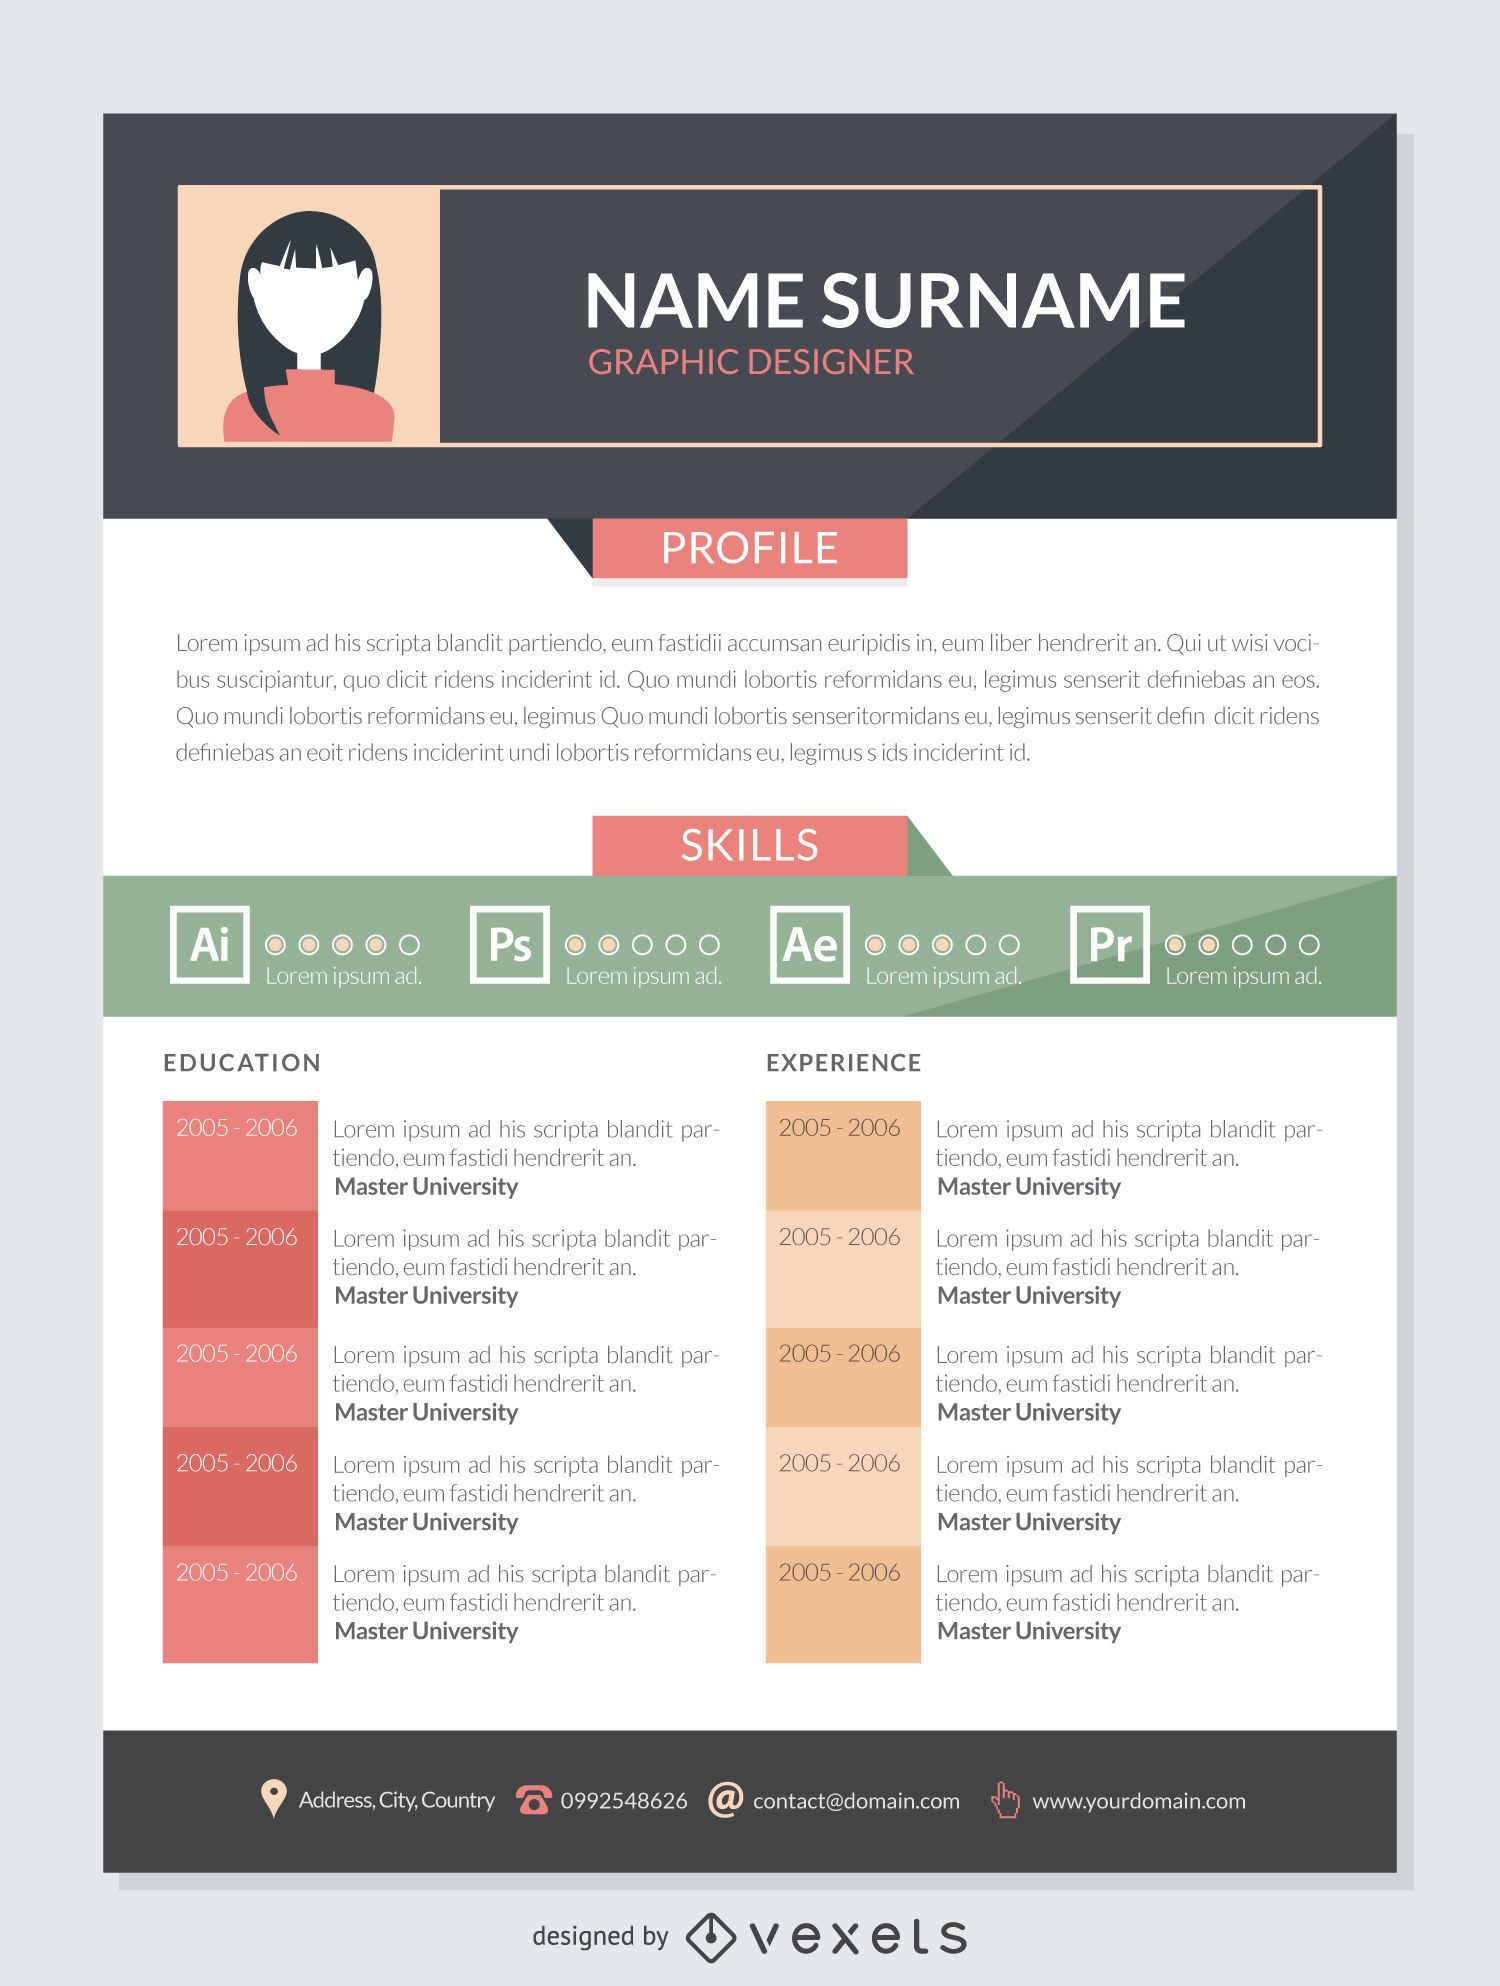 Resume Designer good example of branding system line coming off the m feels a little heavy graphic design resumesgraphic Graphic Designer Resume Mockup Template